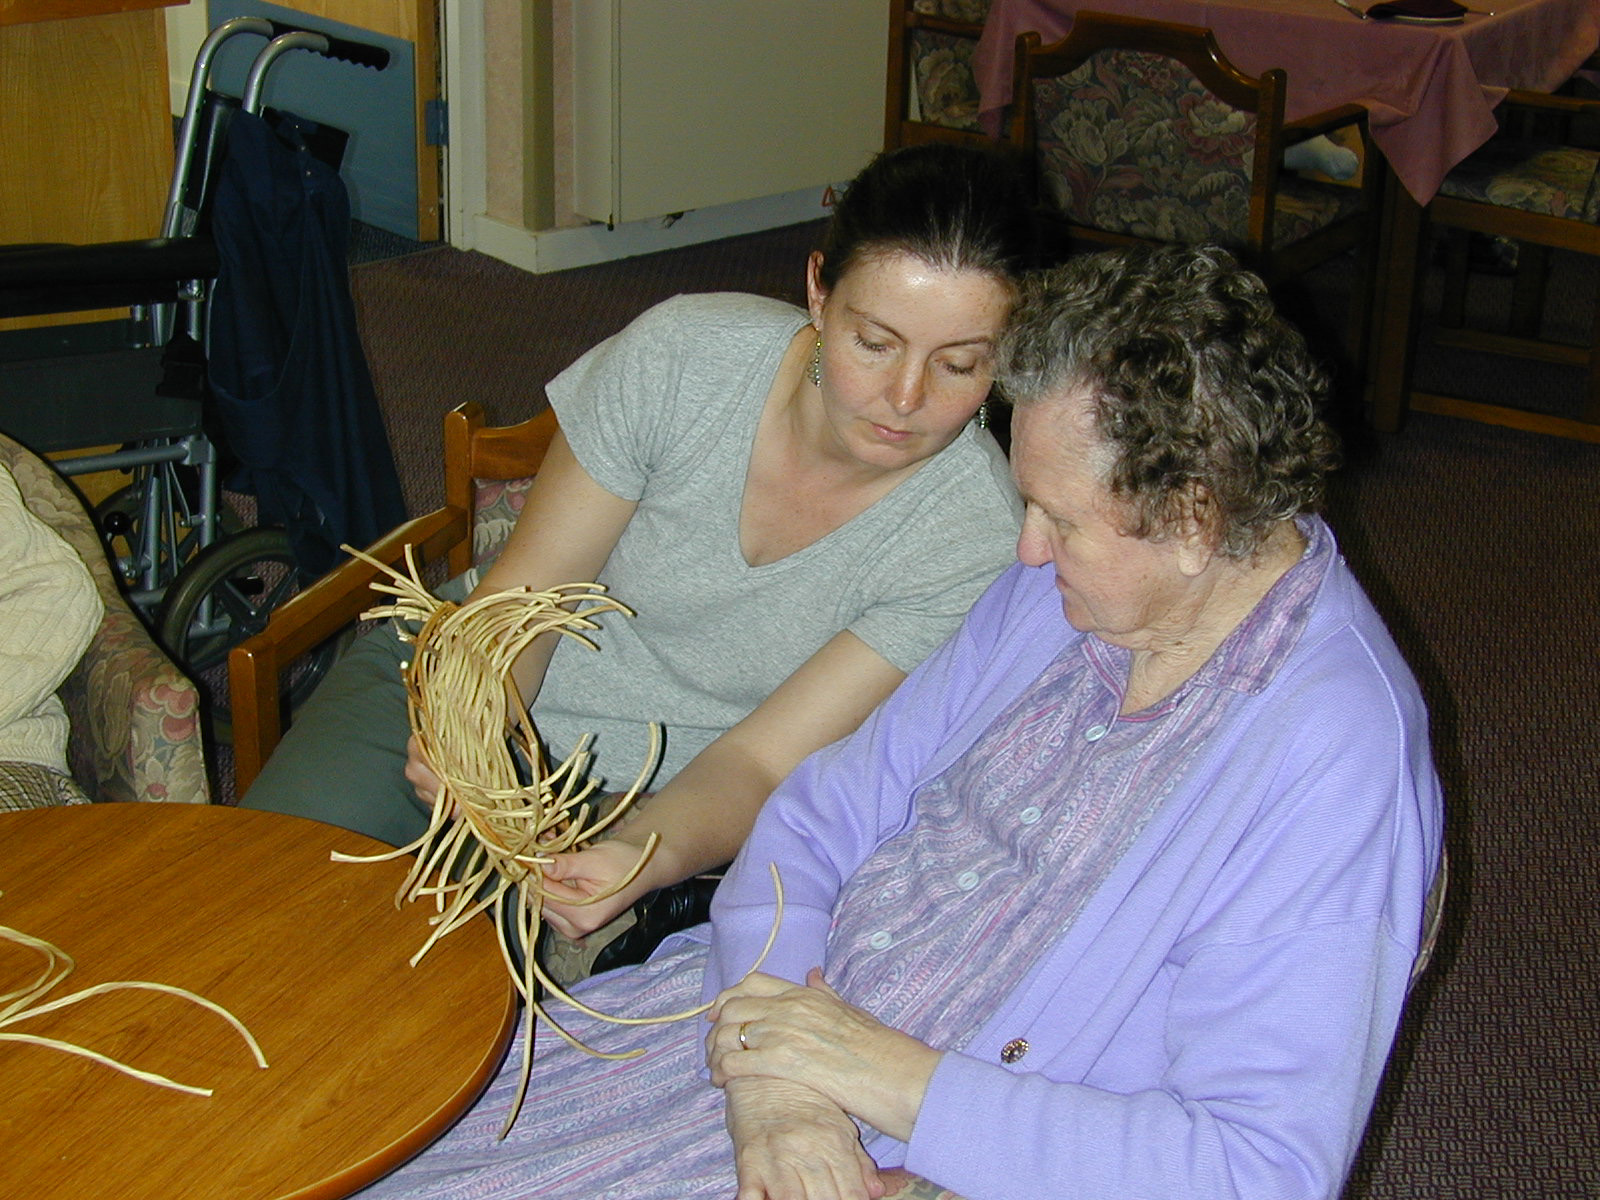 longlands care home, pitt rivers museum basketry project(3)